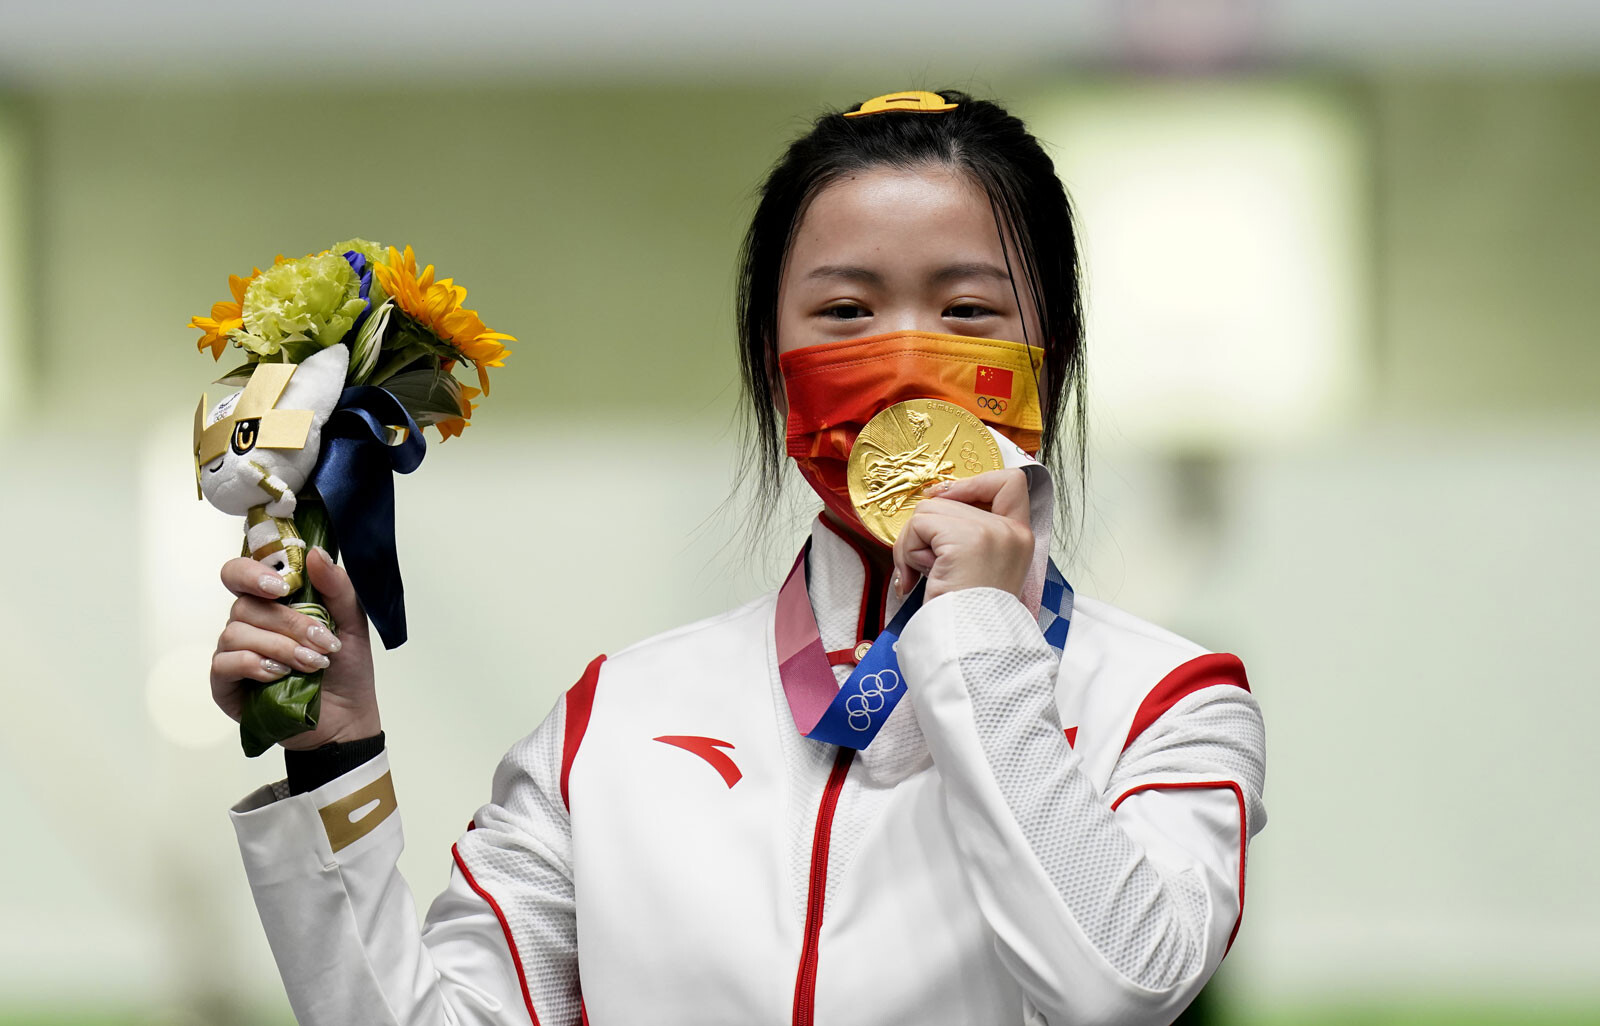 <i>Danny Lawson/PA Images/Getty Images</i><br/>China's Yang Qian celebrates with her gold medal after winning the 10m Air Rifle Women's Final on the first day of the Tokyo 2020 Olympic Games.